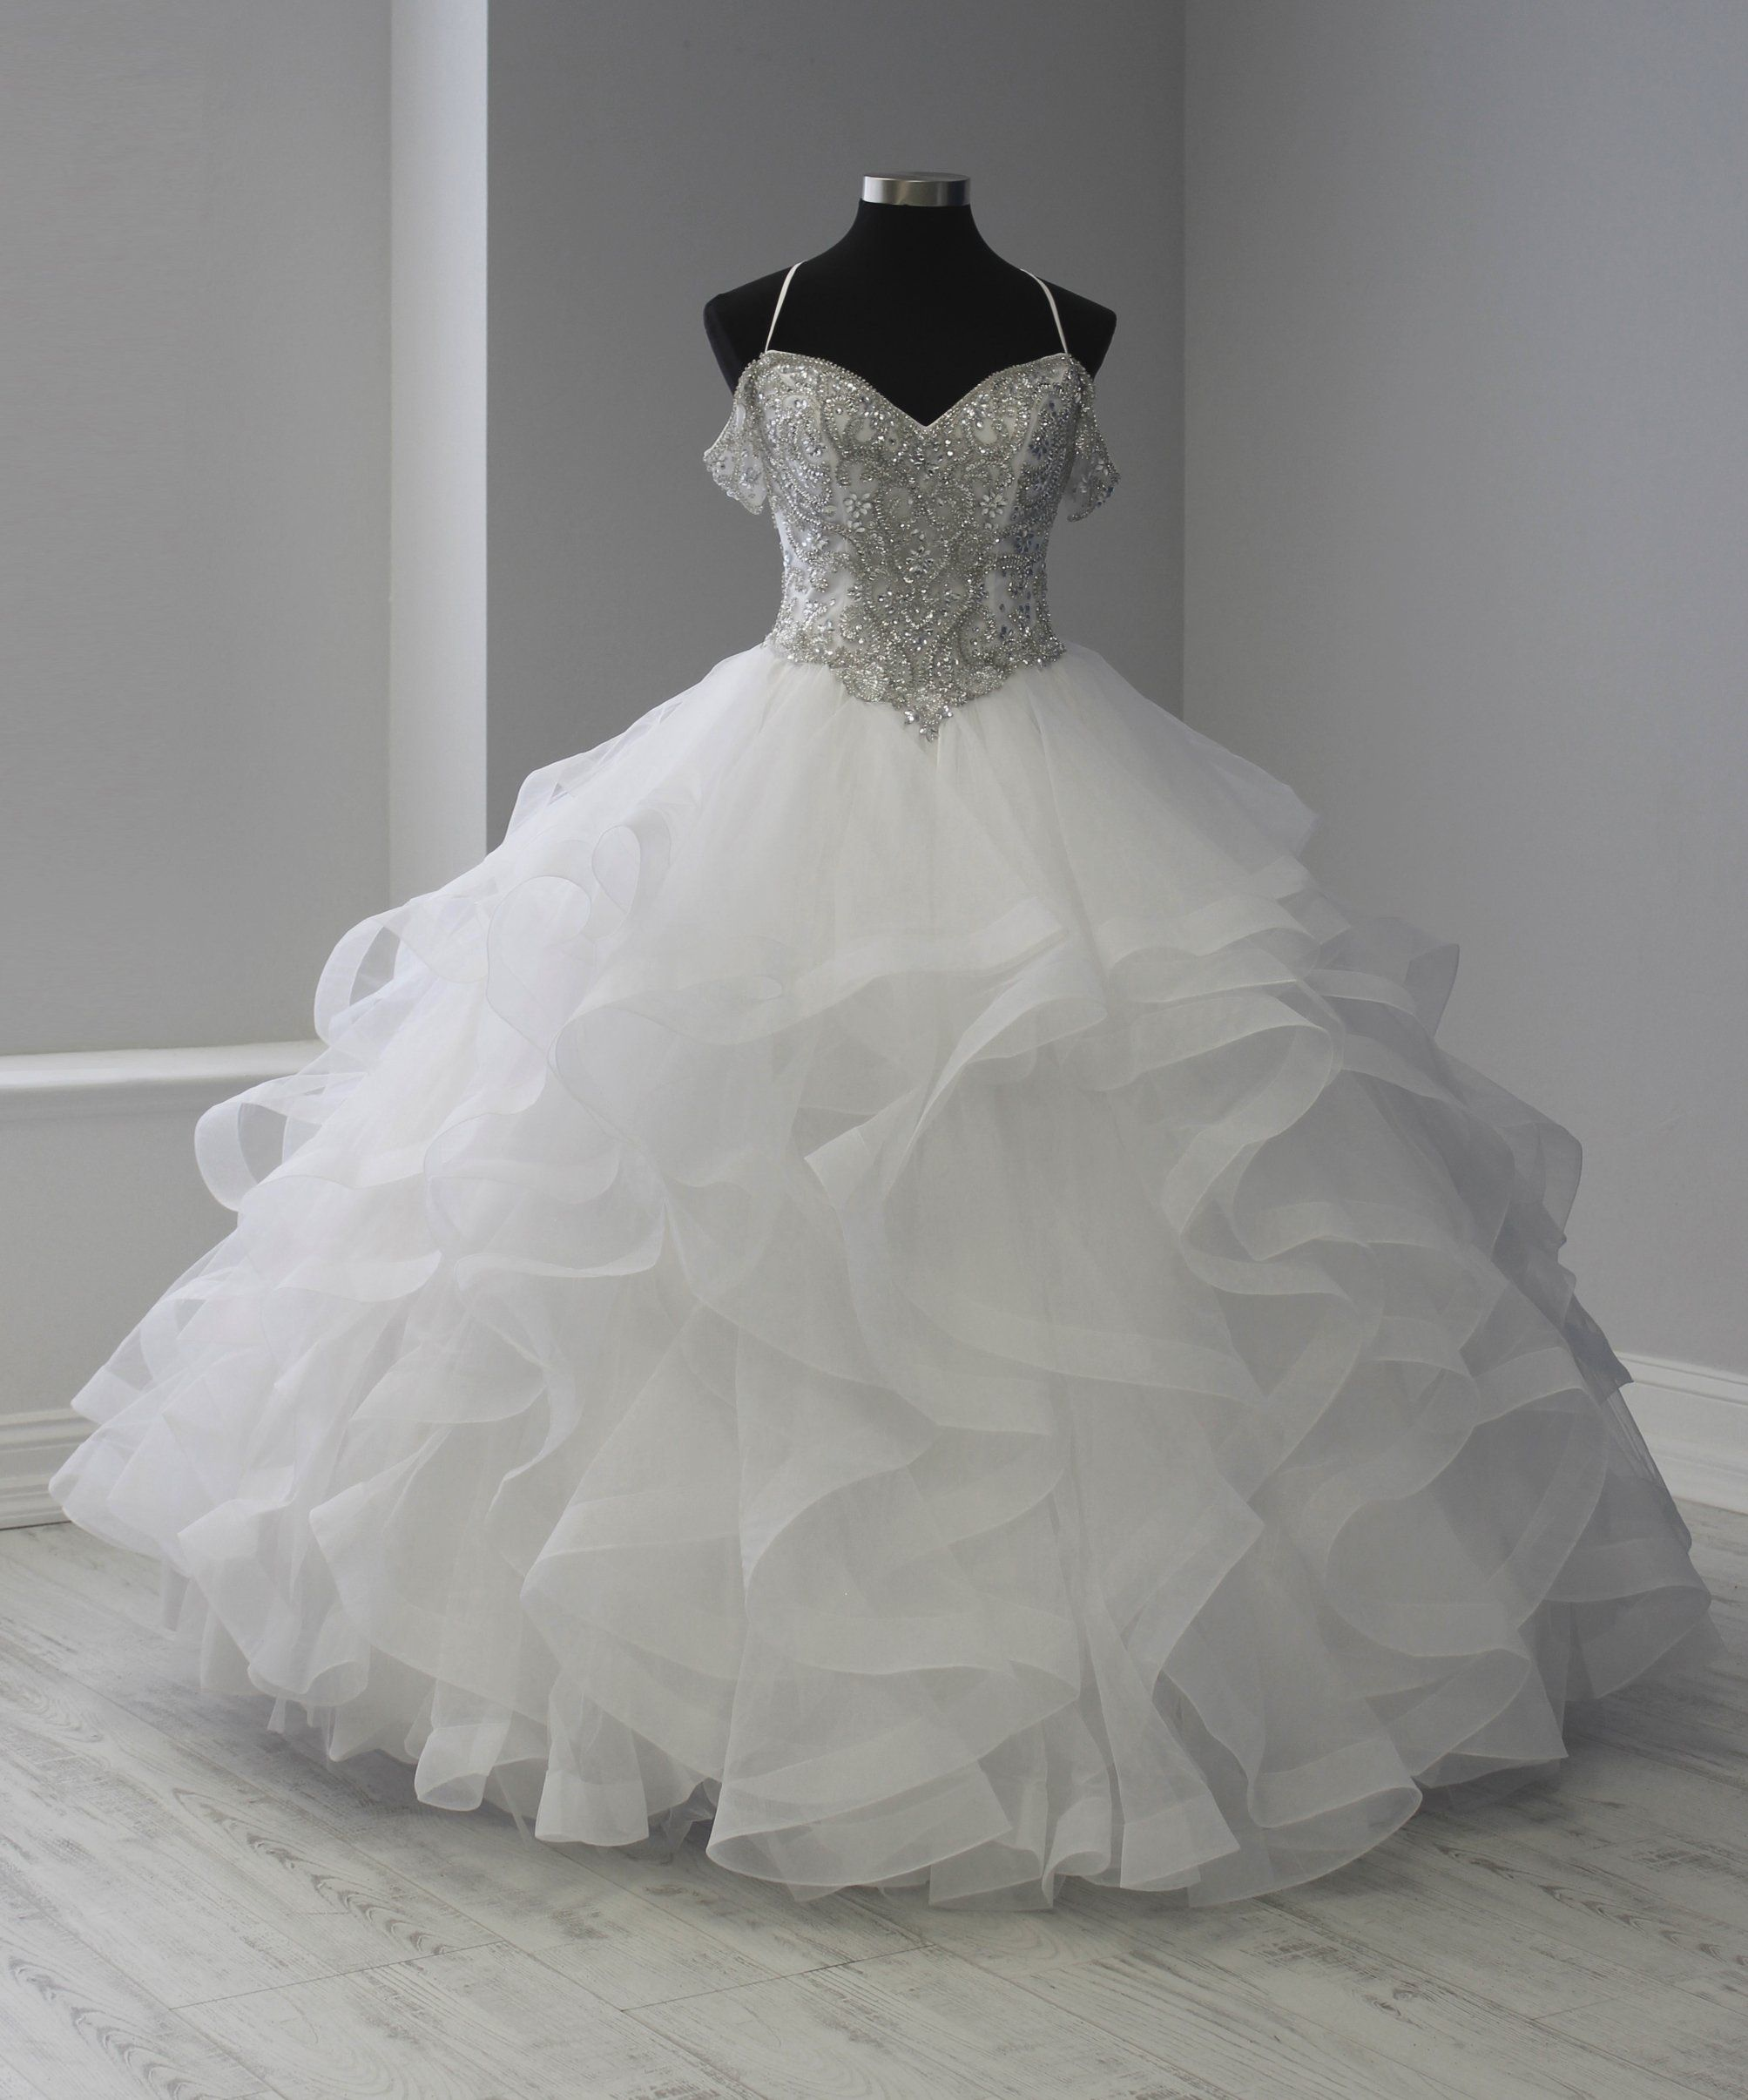 Off Shoulder Ruffled Quinceanera Dress By Fiesta Gowns 56369 Size 20 28 White Quinceanera Dresses Quince Dresses Quincenera Dresses [ 2411 x 2007 Pixel ]